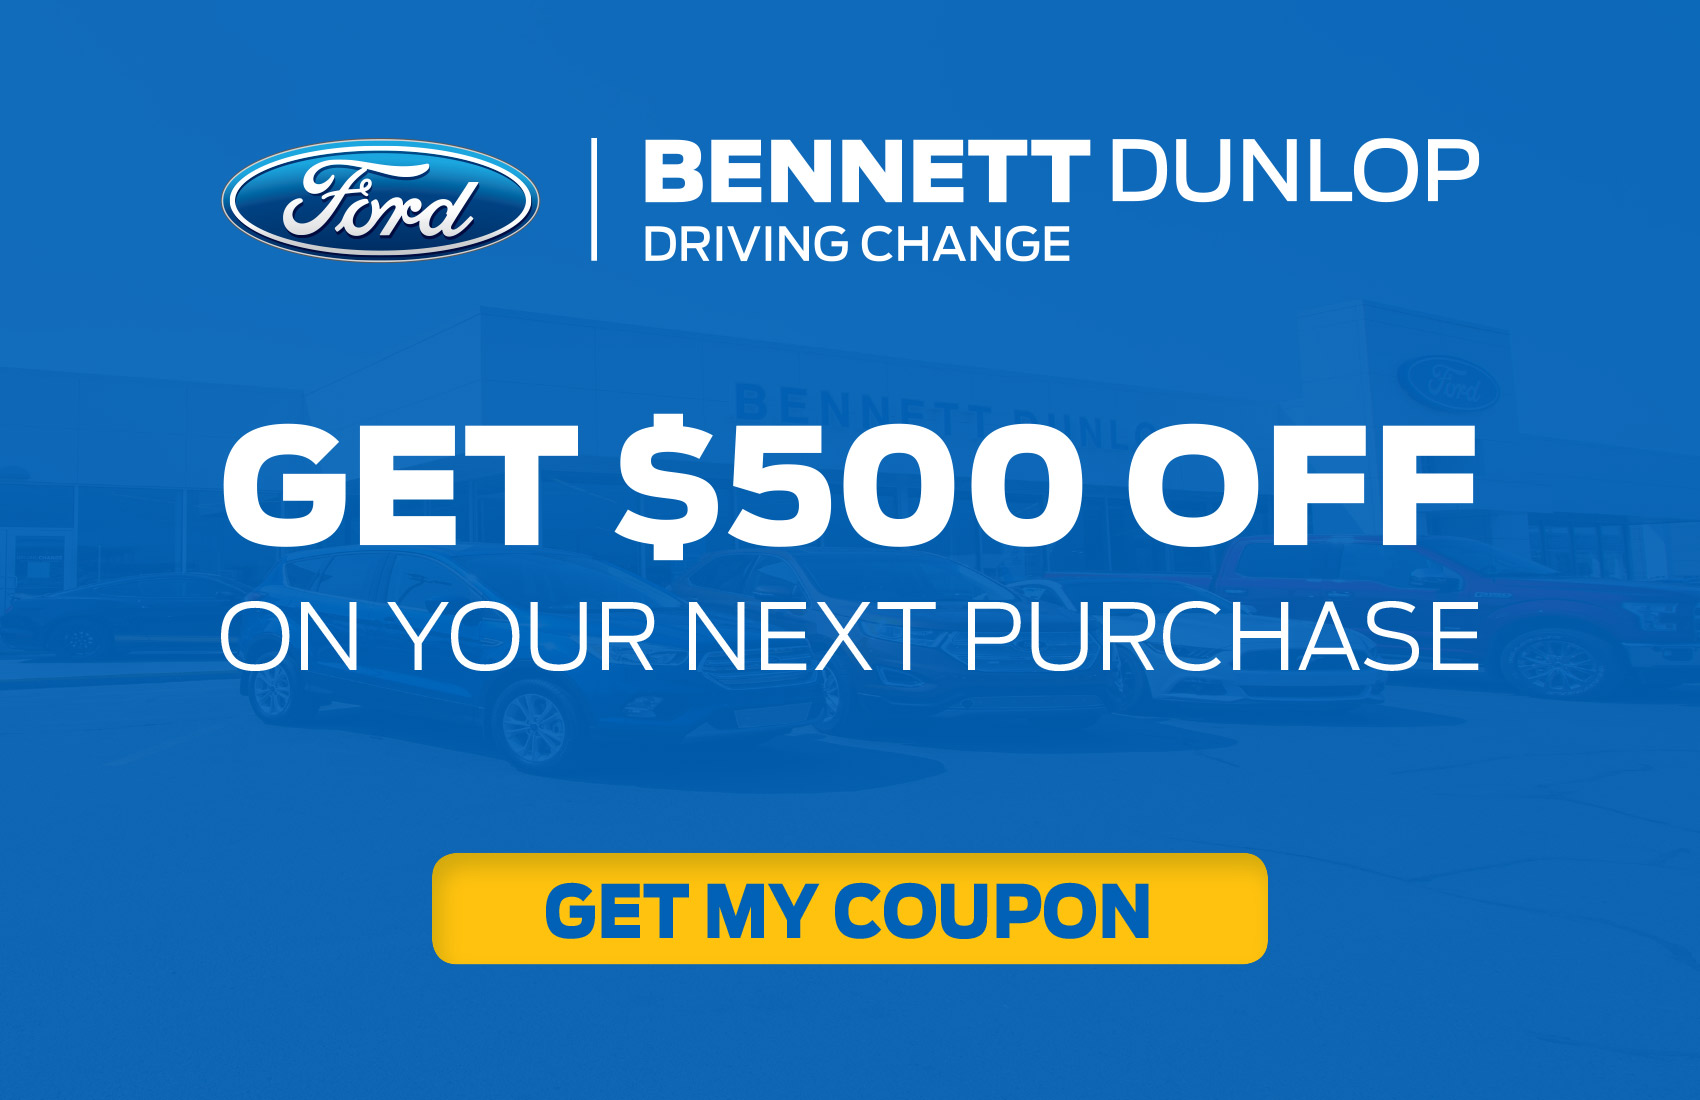 GET YOUR $500 OFF